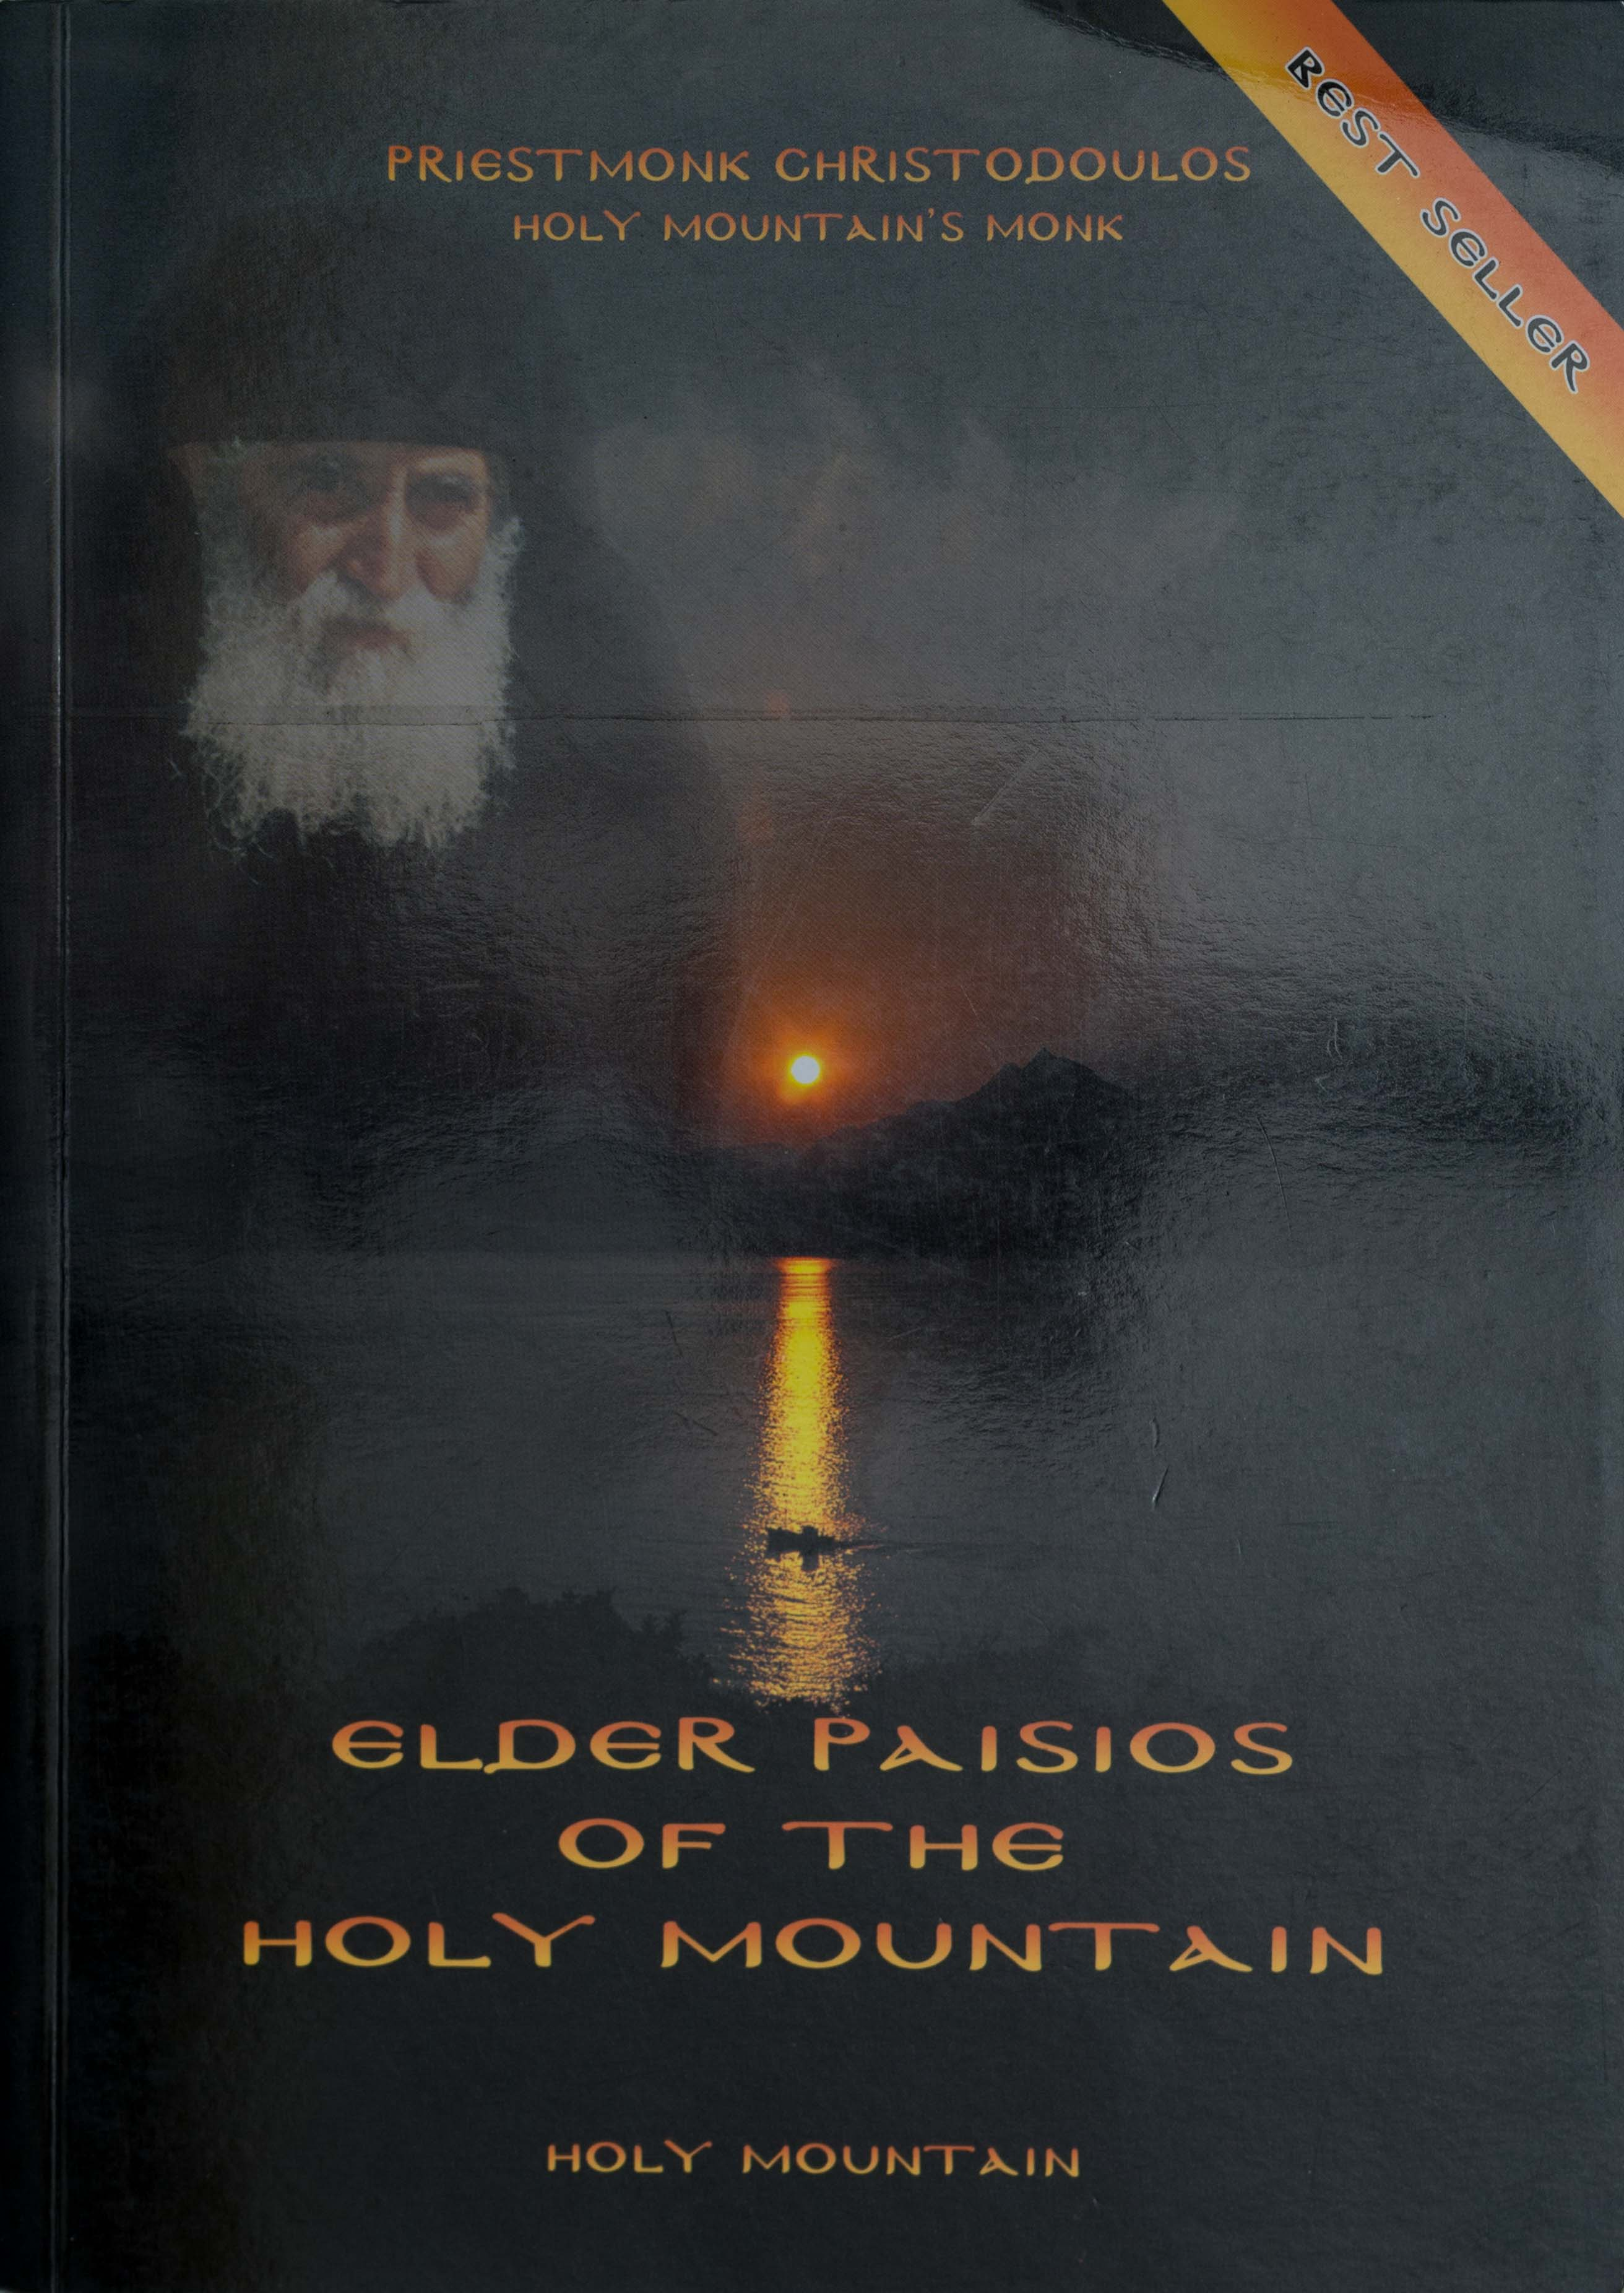 Elder Paisios of the Holy Mountain          Out of Stock